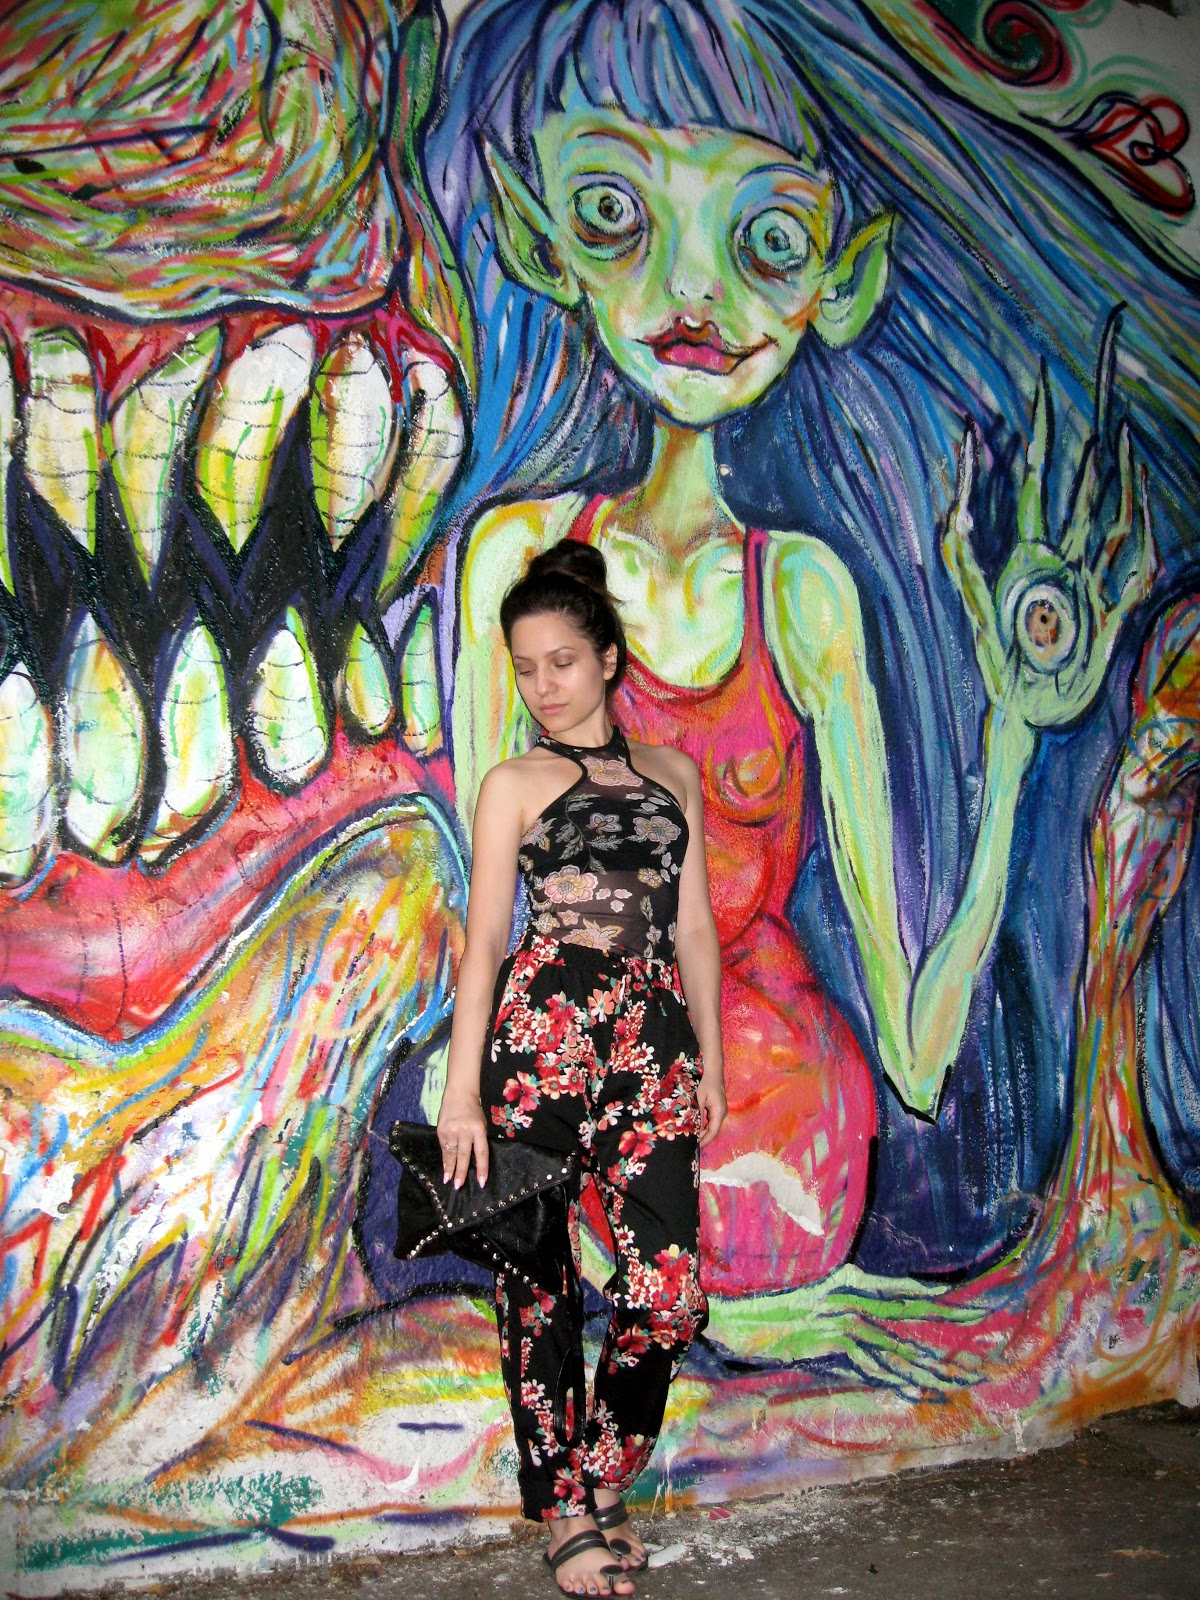 terranova sheer floral tank top, terranova floral pants, black flip flops, black studded clutch, messy bun, casual look, street graffiti art